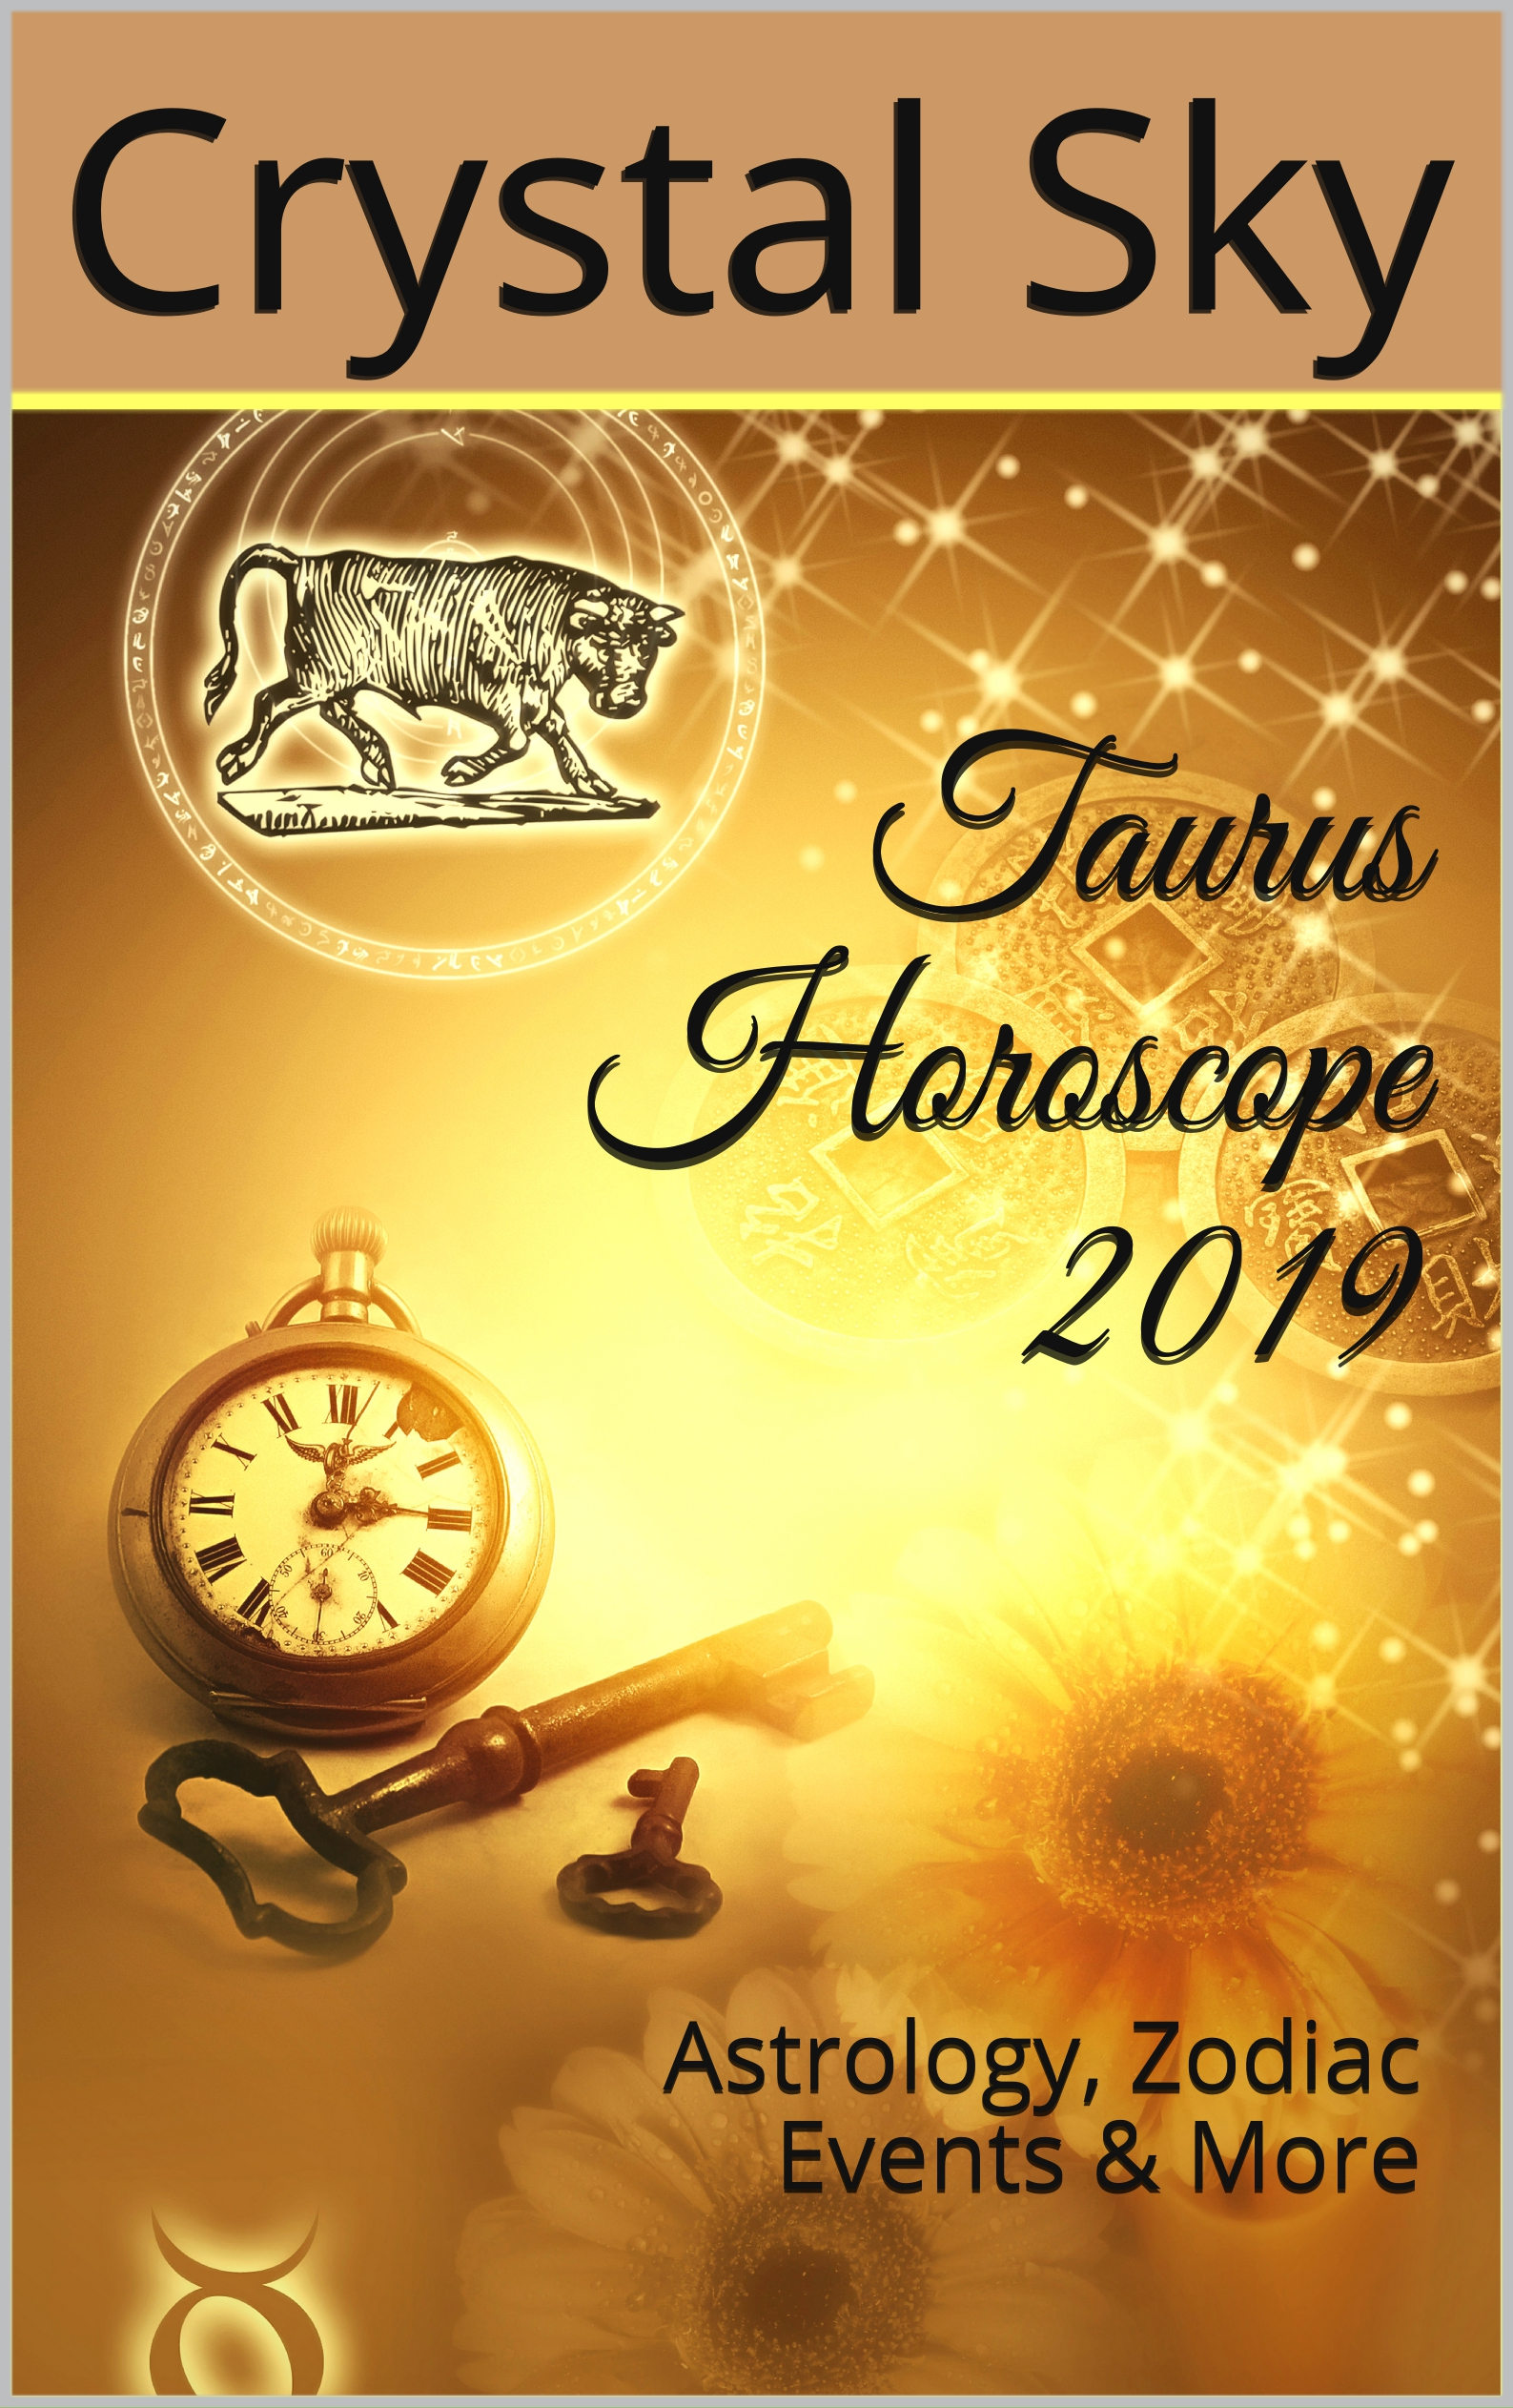 Taurus Horoscope 2019, an Ebook by Crystal Sky